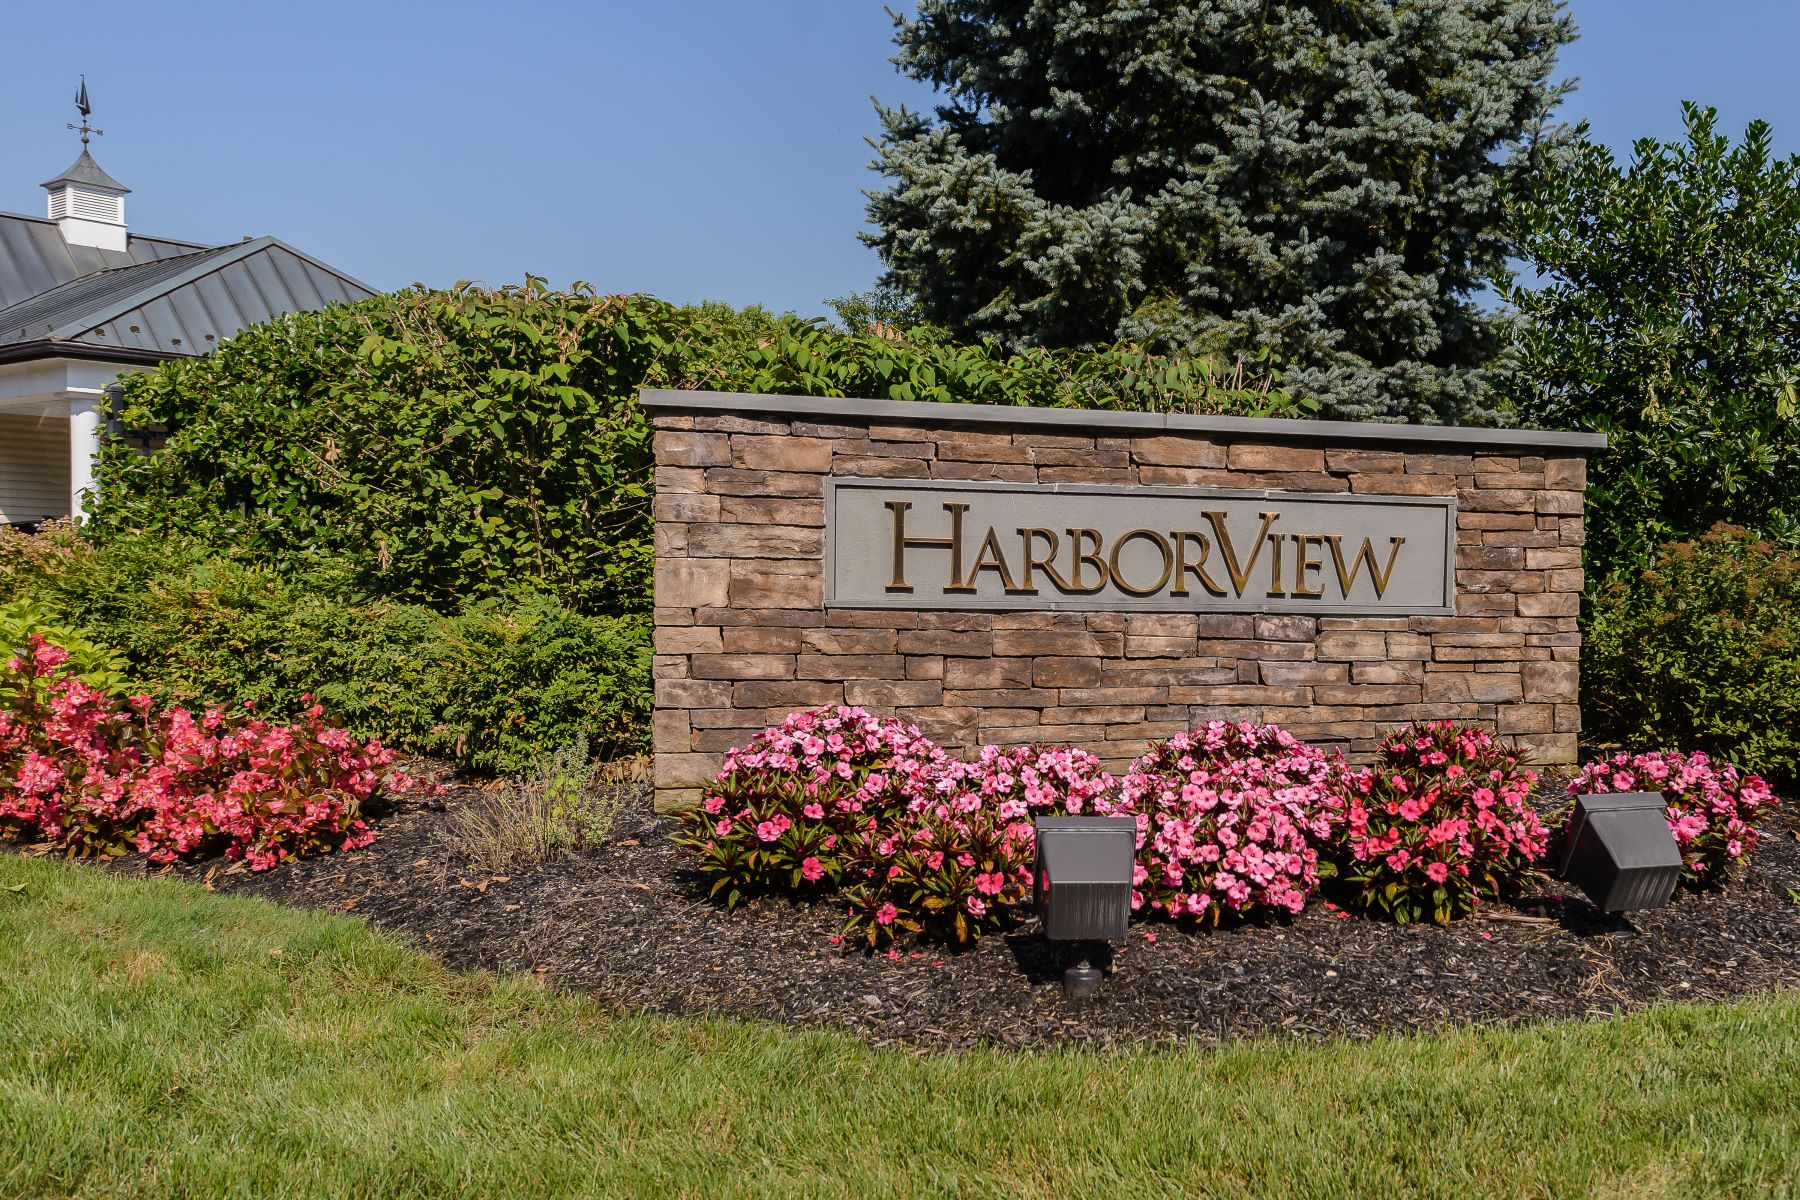 Condominium for Sale at 189 Harbor View Dr , Port Washington, NY 11050 189 Harbor View Dr Port Washington, New York 11050 United States